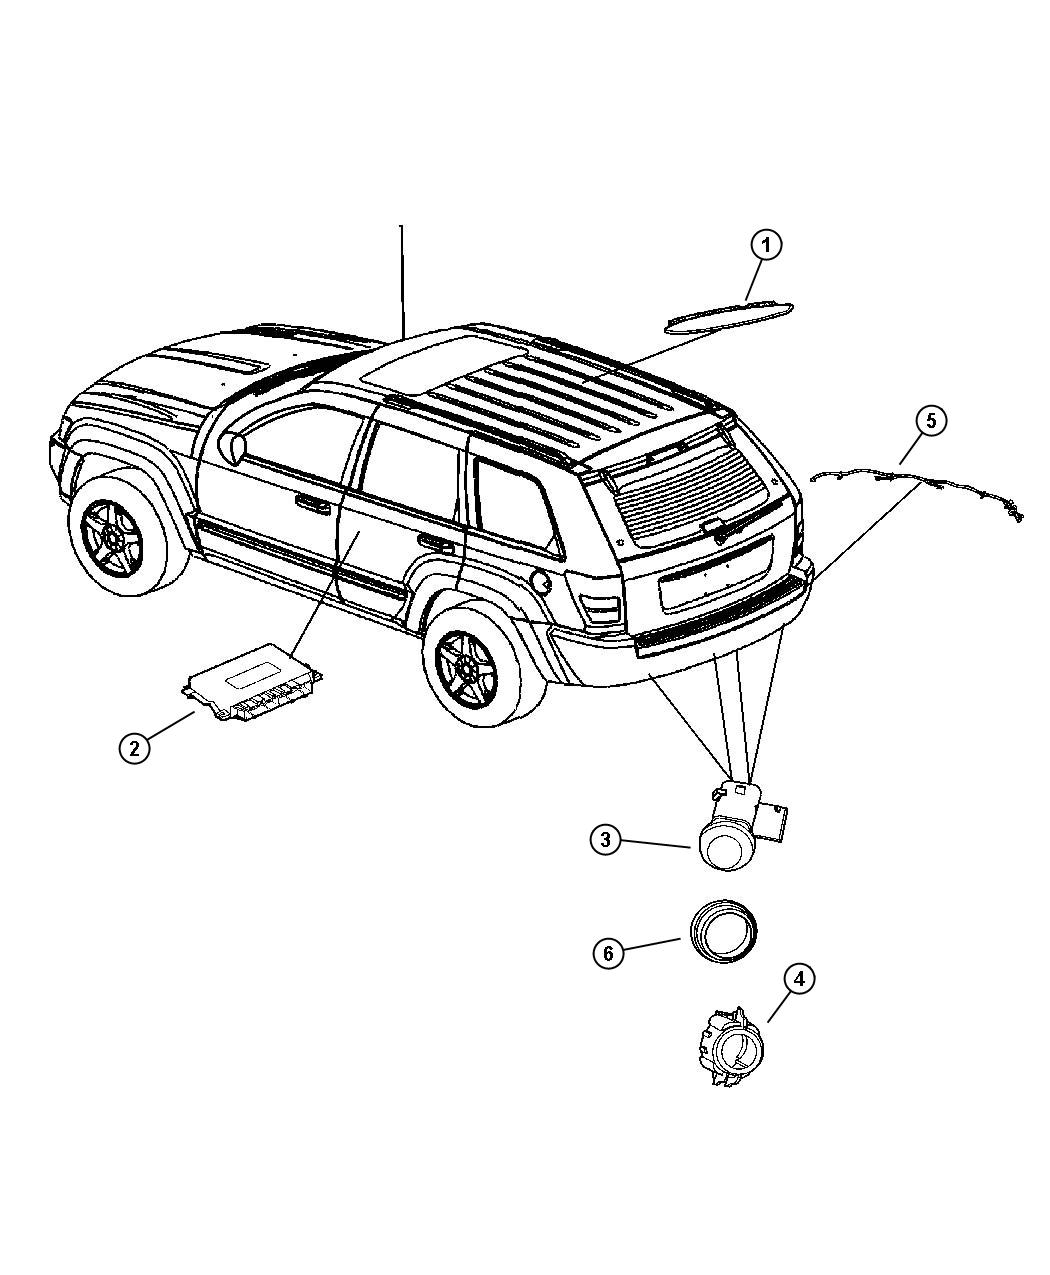 Toyotum 4runner Fuse Diagram